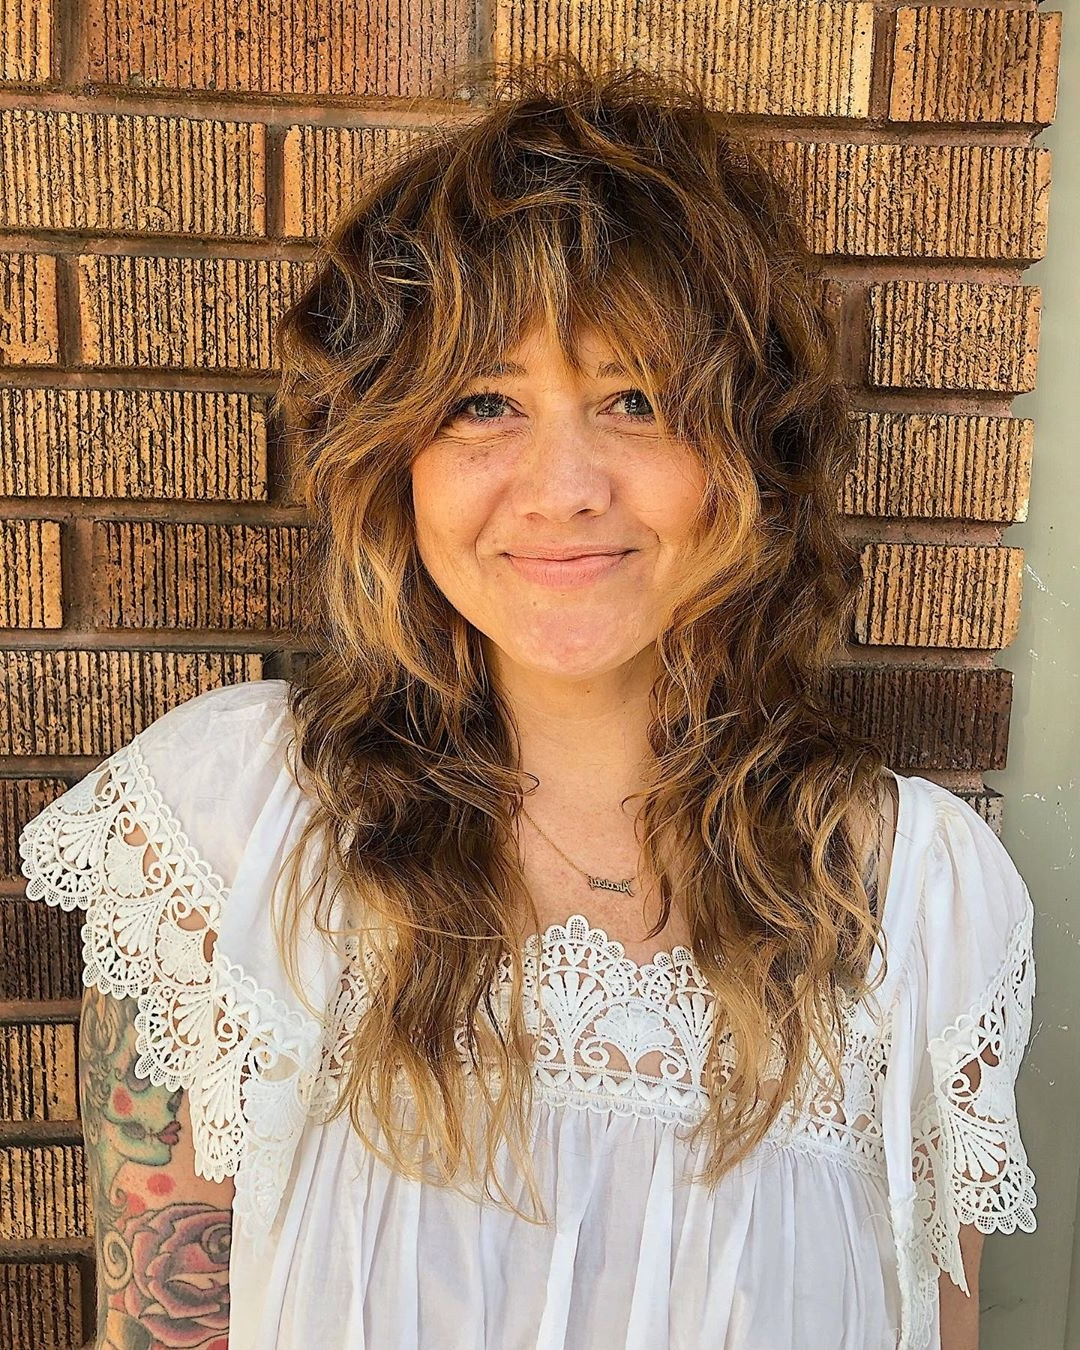 14 Cute Shag Haircut Ideas For Any Length — Shag Hair Trend In Shaggy Haircuts With Bangs And Longer Layers (View 8 of 20)